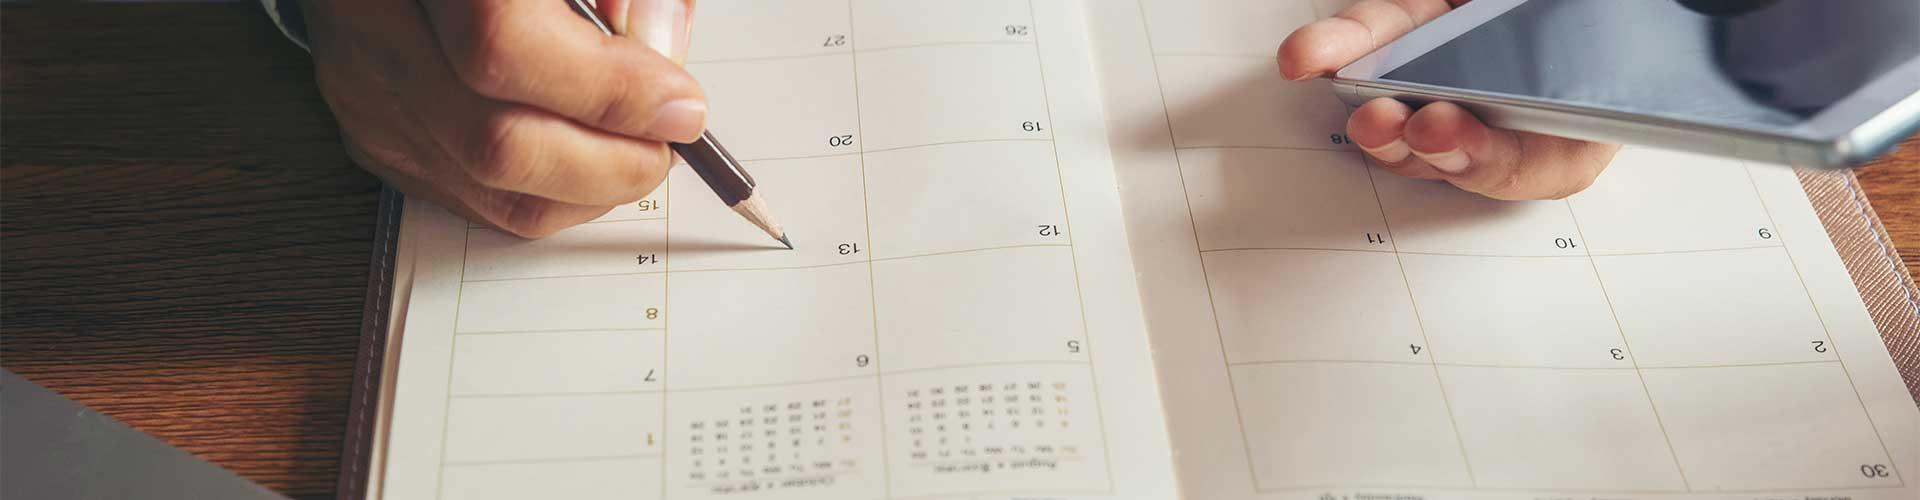 Hands with pencil and smartphone on desk calendar